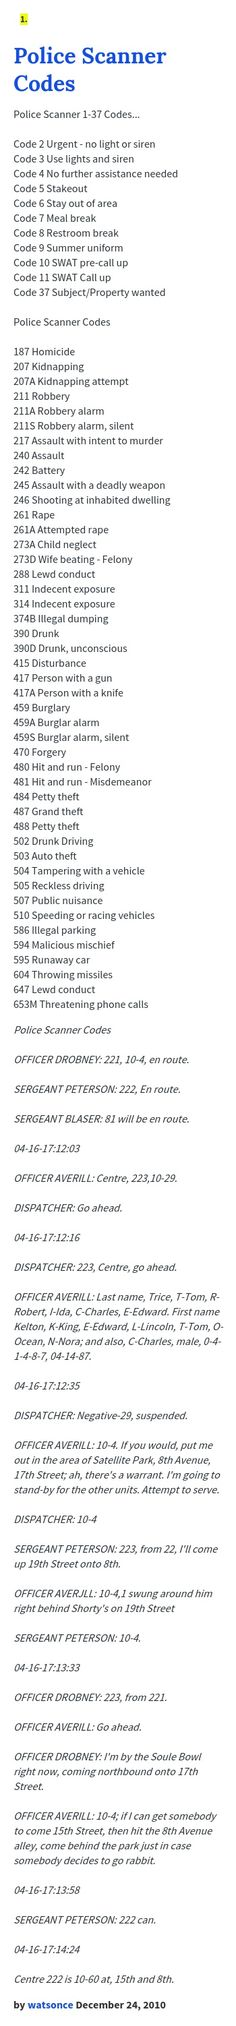 Police Scanner 1-37 Codes... Code 2 Urgent - no light or siren Code 3 Use lights and siren Code 4 No further assistance needed Code 5 Stakeout Code...